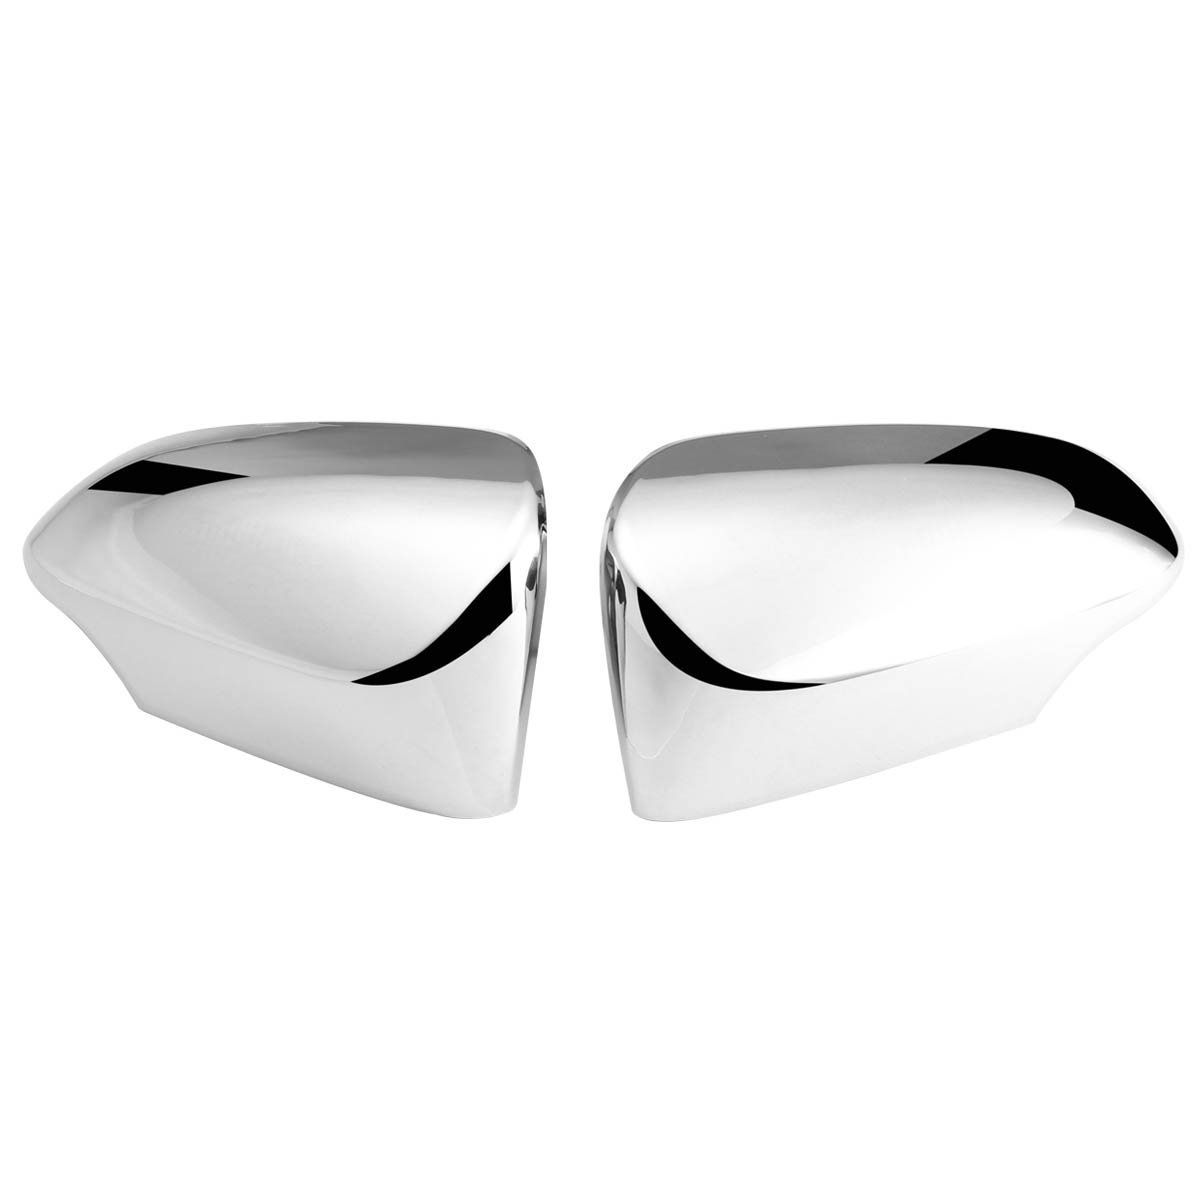 SIDE MIRROR COVERS FOR CHEVROLET ENJOY (SET OF 2PCS)